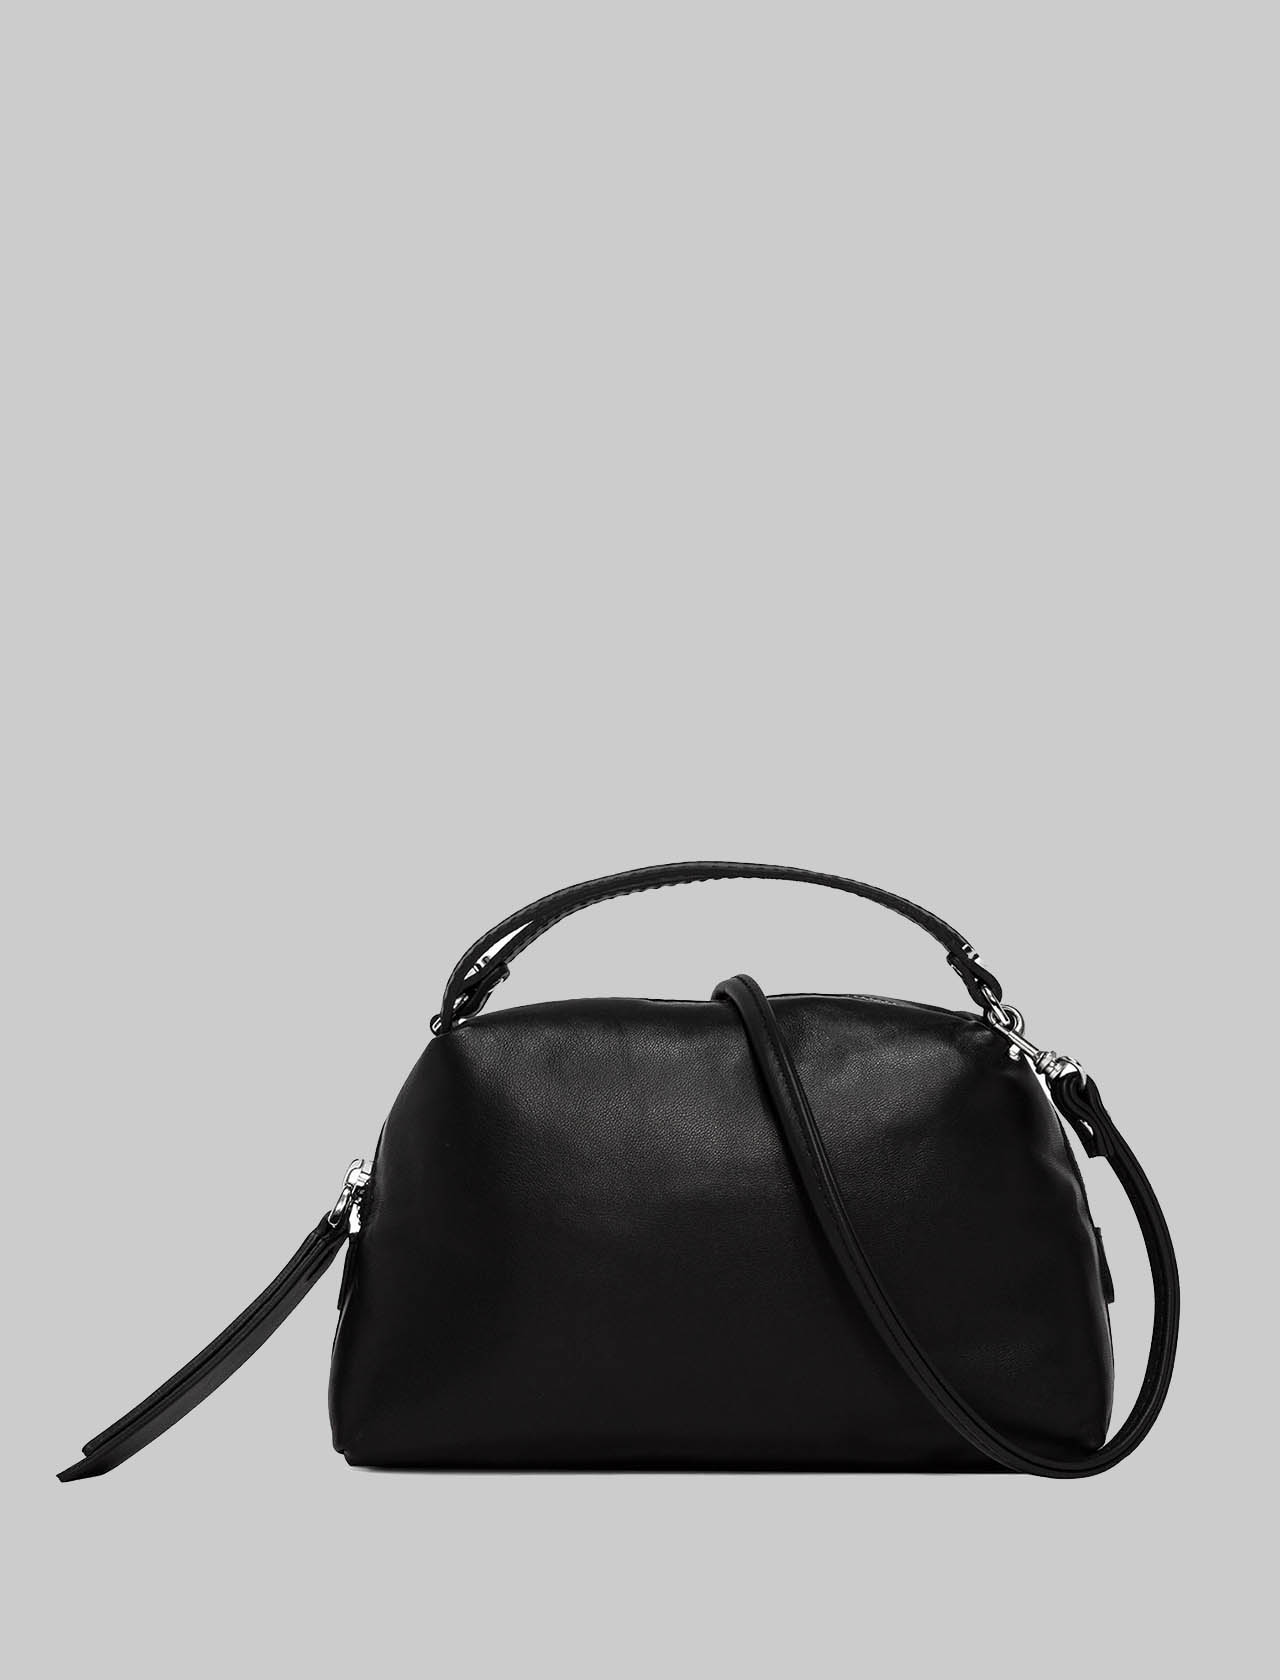 Mini Alifa Woman Bag in Black Leather with Double Hand Handle and Removable Shoulder Strap Gianni Chiarini | Bags and backpacks | BS8145001